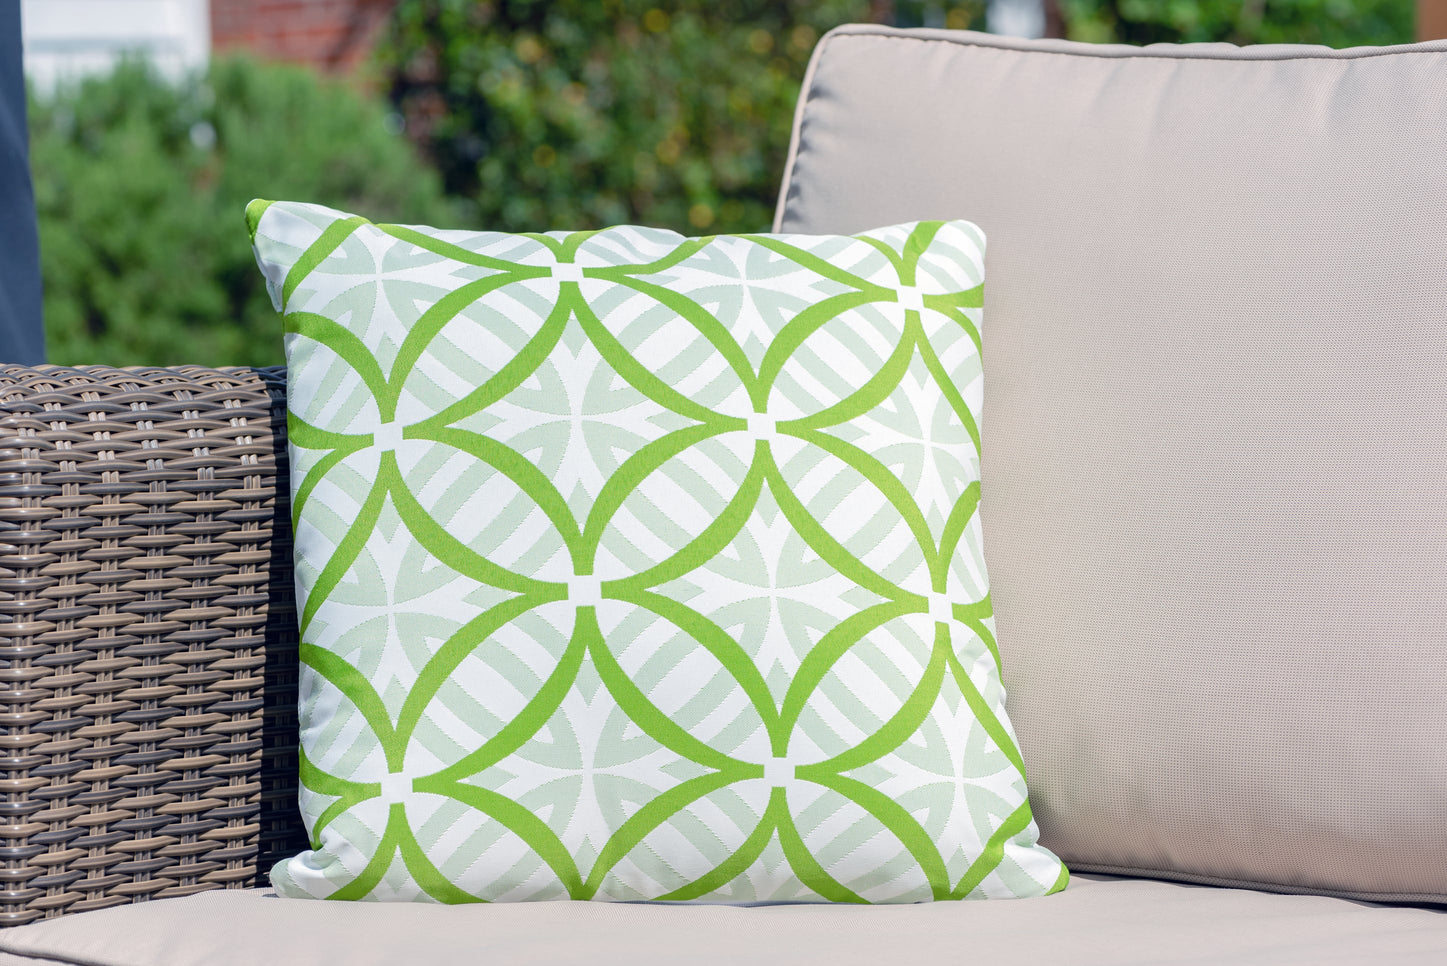 Armadillo Sun waterproof luxury cushion in green and white pattern